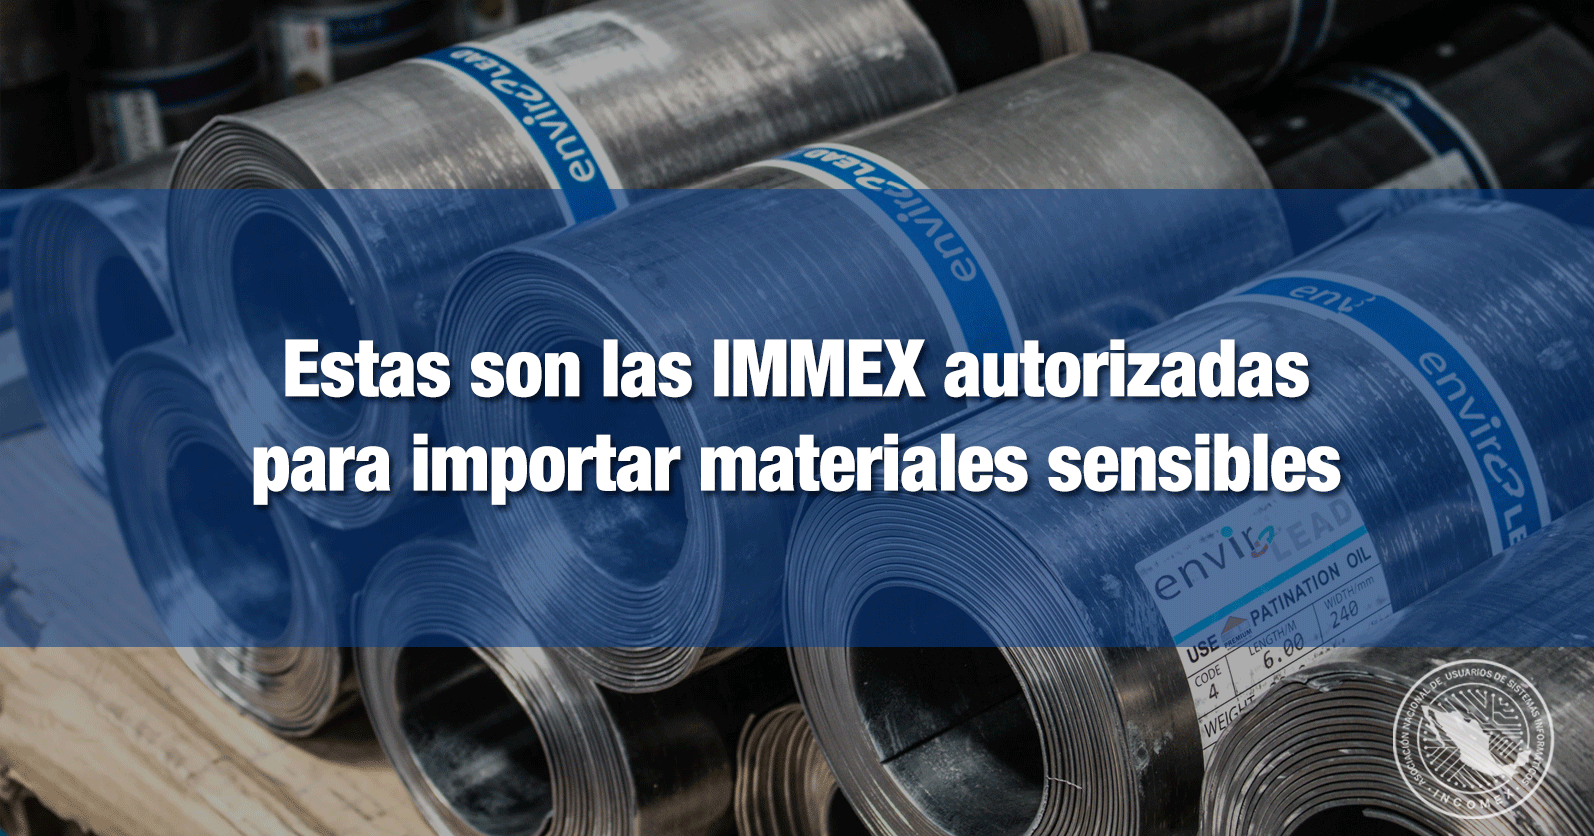 Estas son las IMMEX autorizadas para importar materiales sensibles